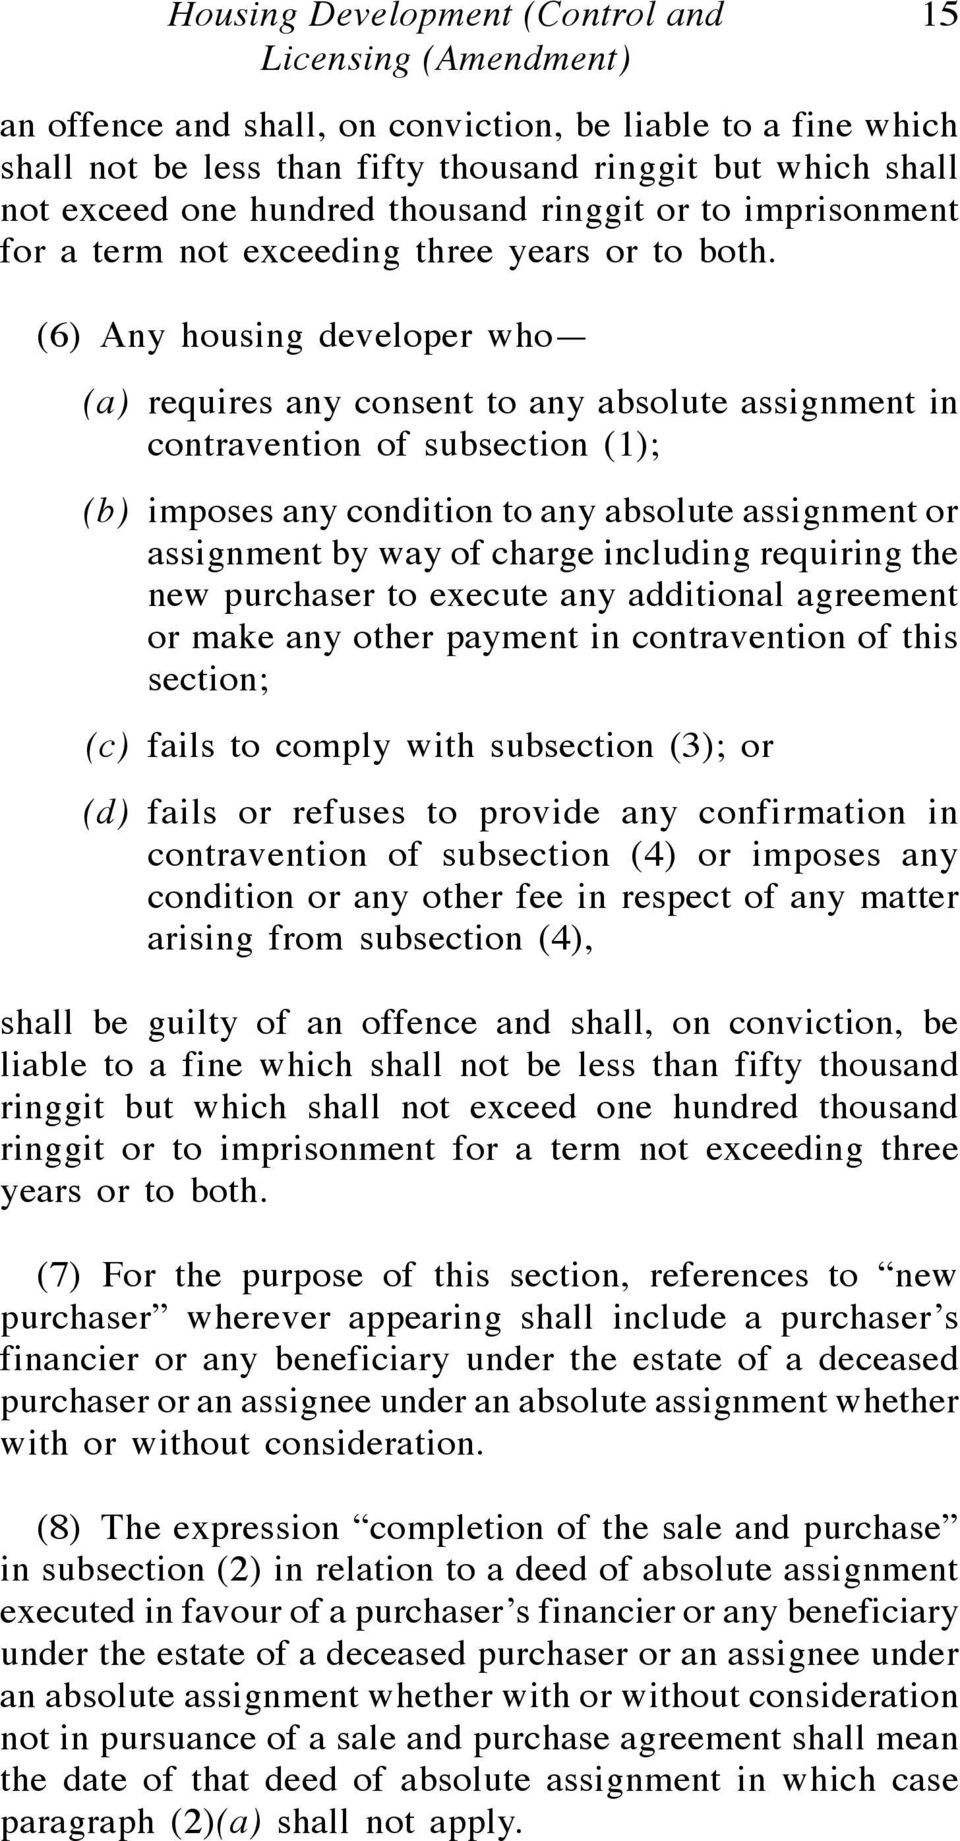 (6) Any housing developer who (a) requires any consent to any absolute assignment in contravention of subsection (1); (b) imposes any condition to any absolute assignment or assignment by way of